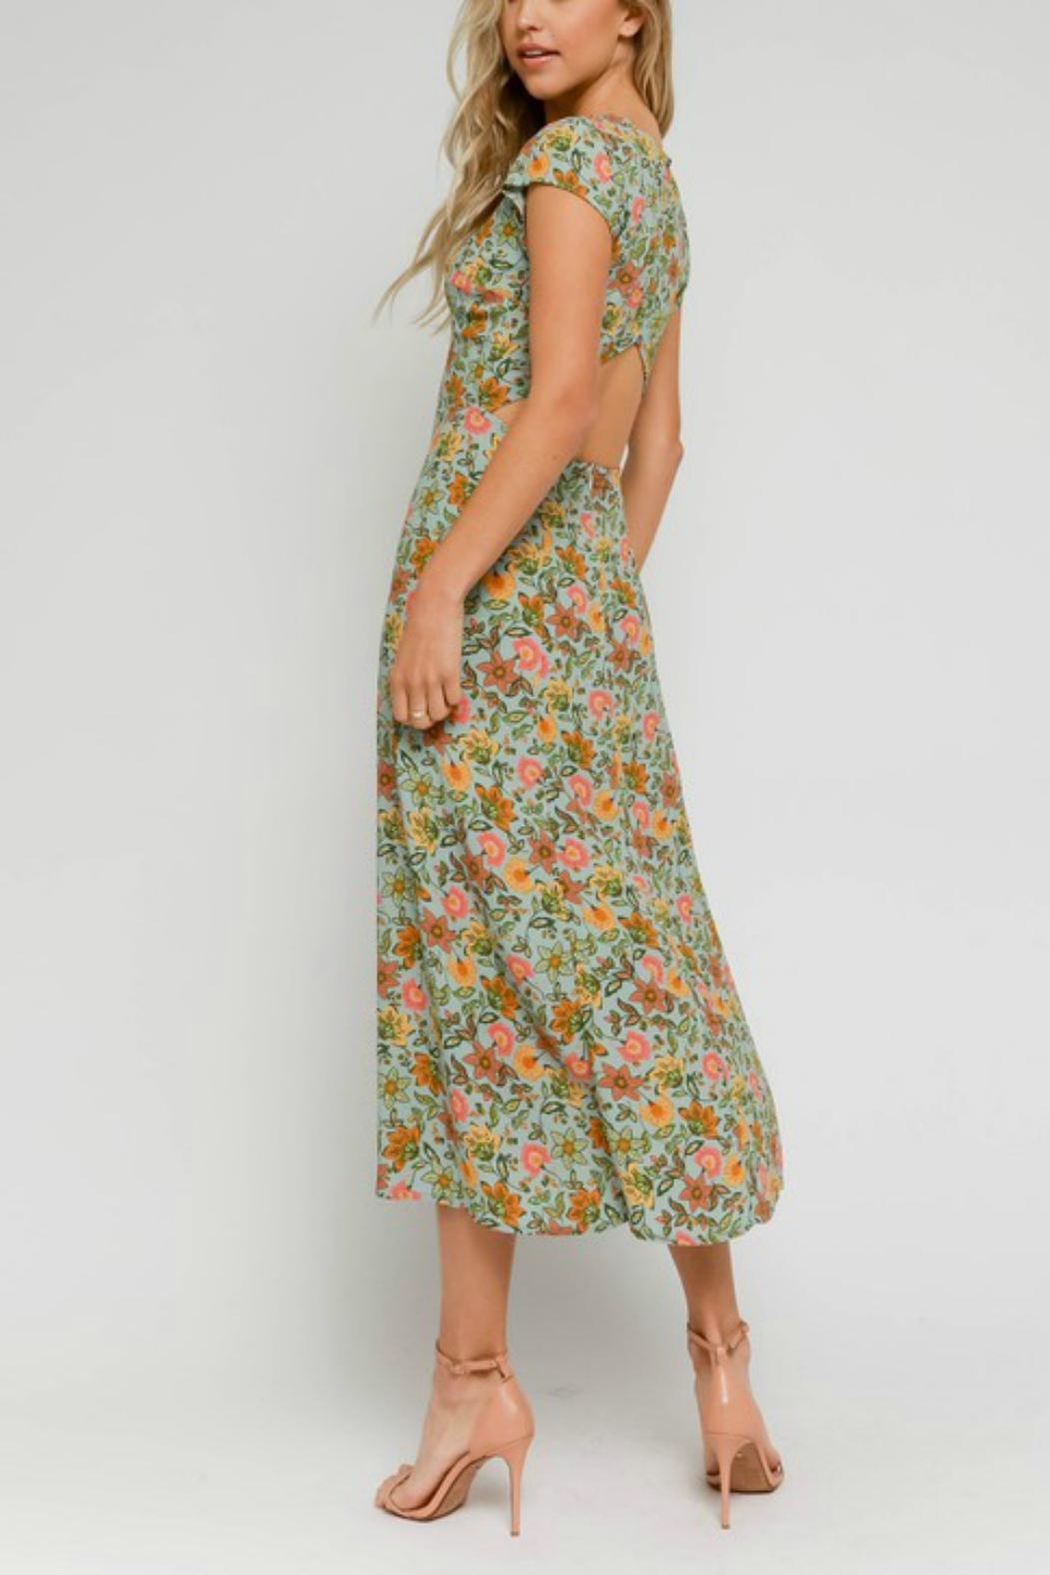 Pretty Little Things Floral Midi Dress - Side Cropped Image